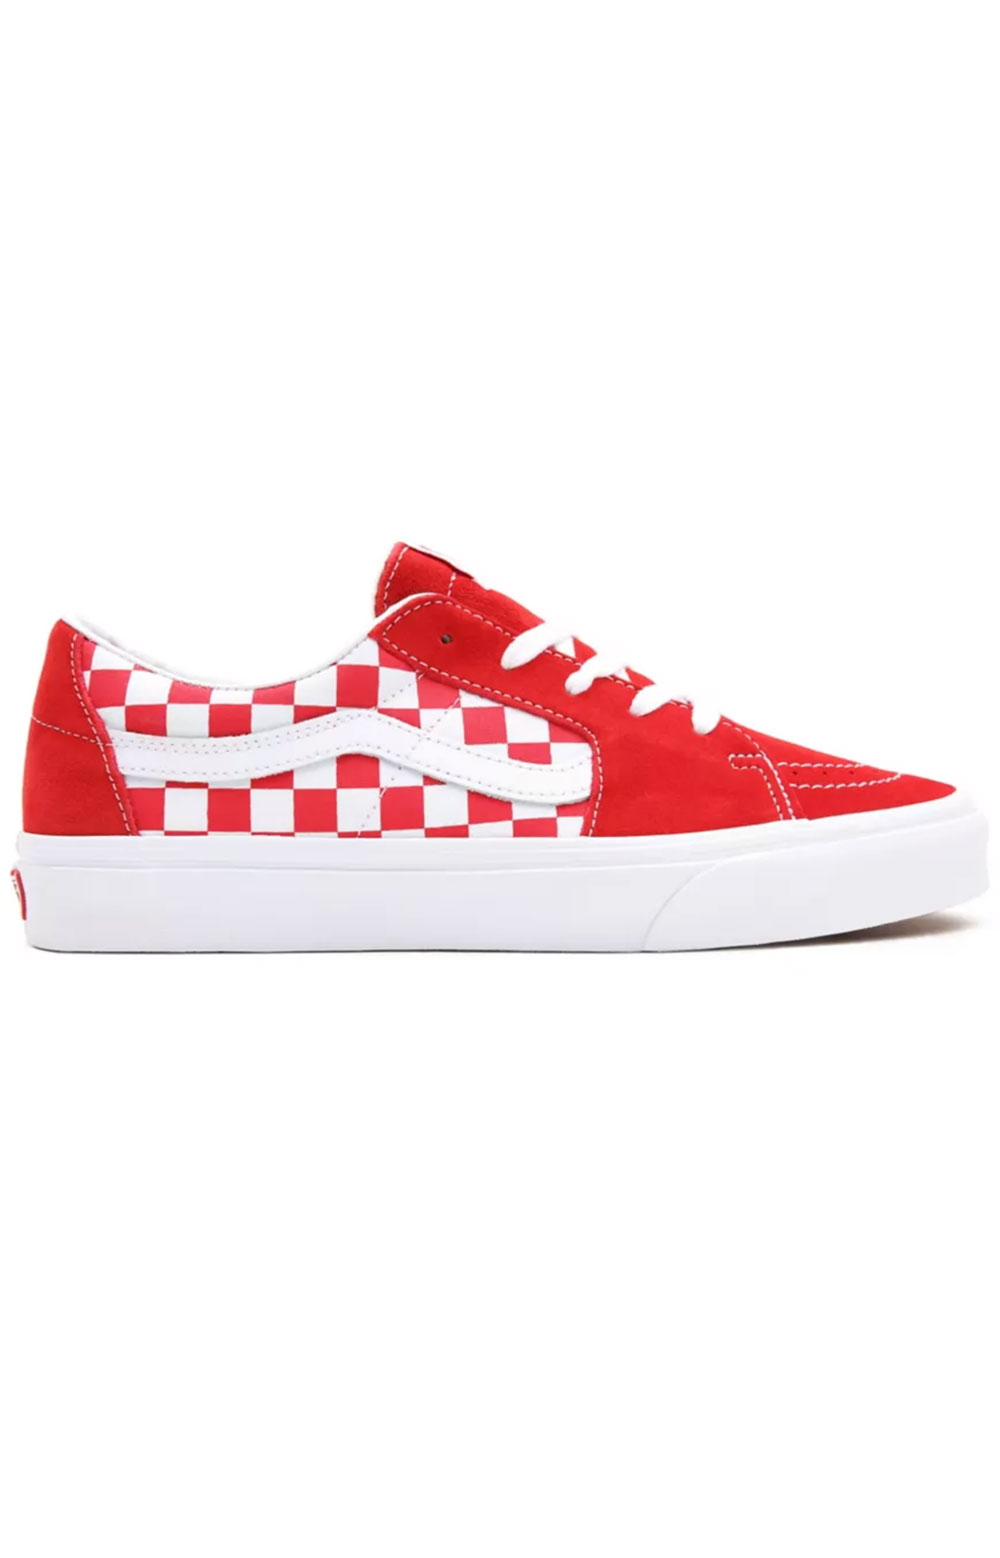 (UUK4W9) Canvas Suede Sk8-Low Shoes - Racing Red/Checkerboard